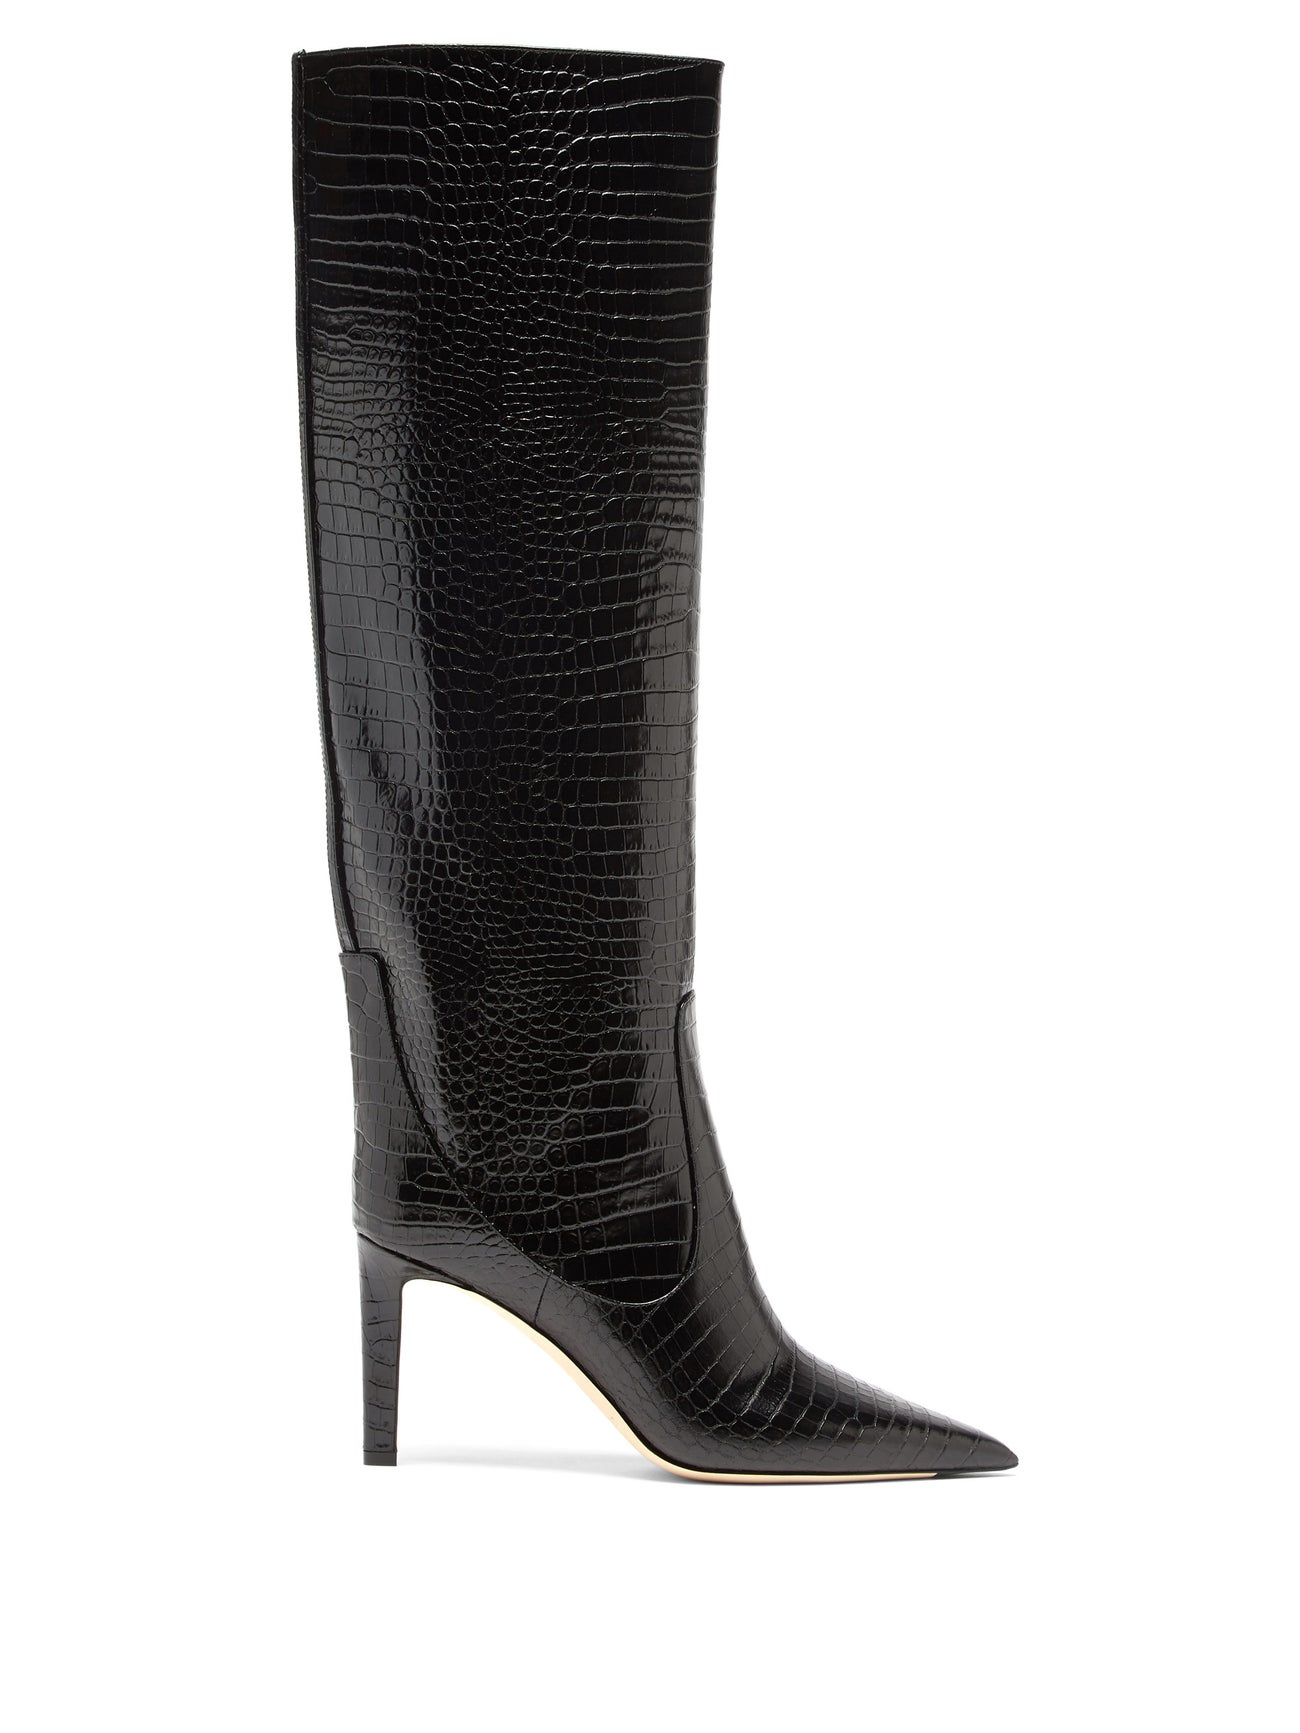 Mavis 85 point-toe crocodile-effect knee boots by Jimmy Choo, available on matchesfashion.com for $1115 Olivia Culpo Shoes Exact Product